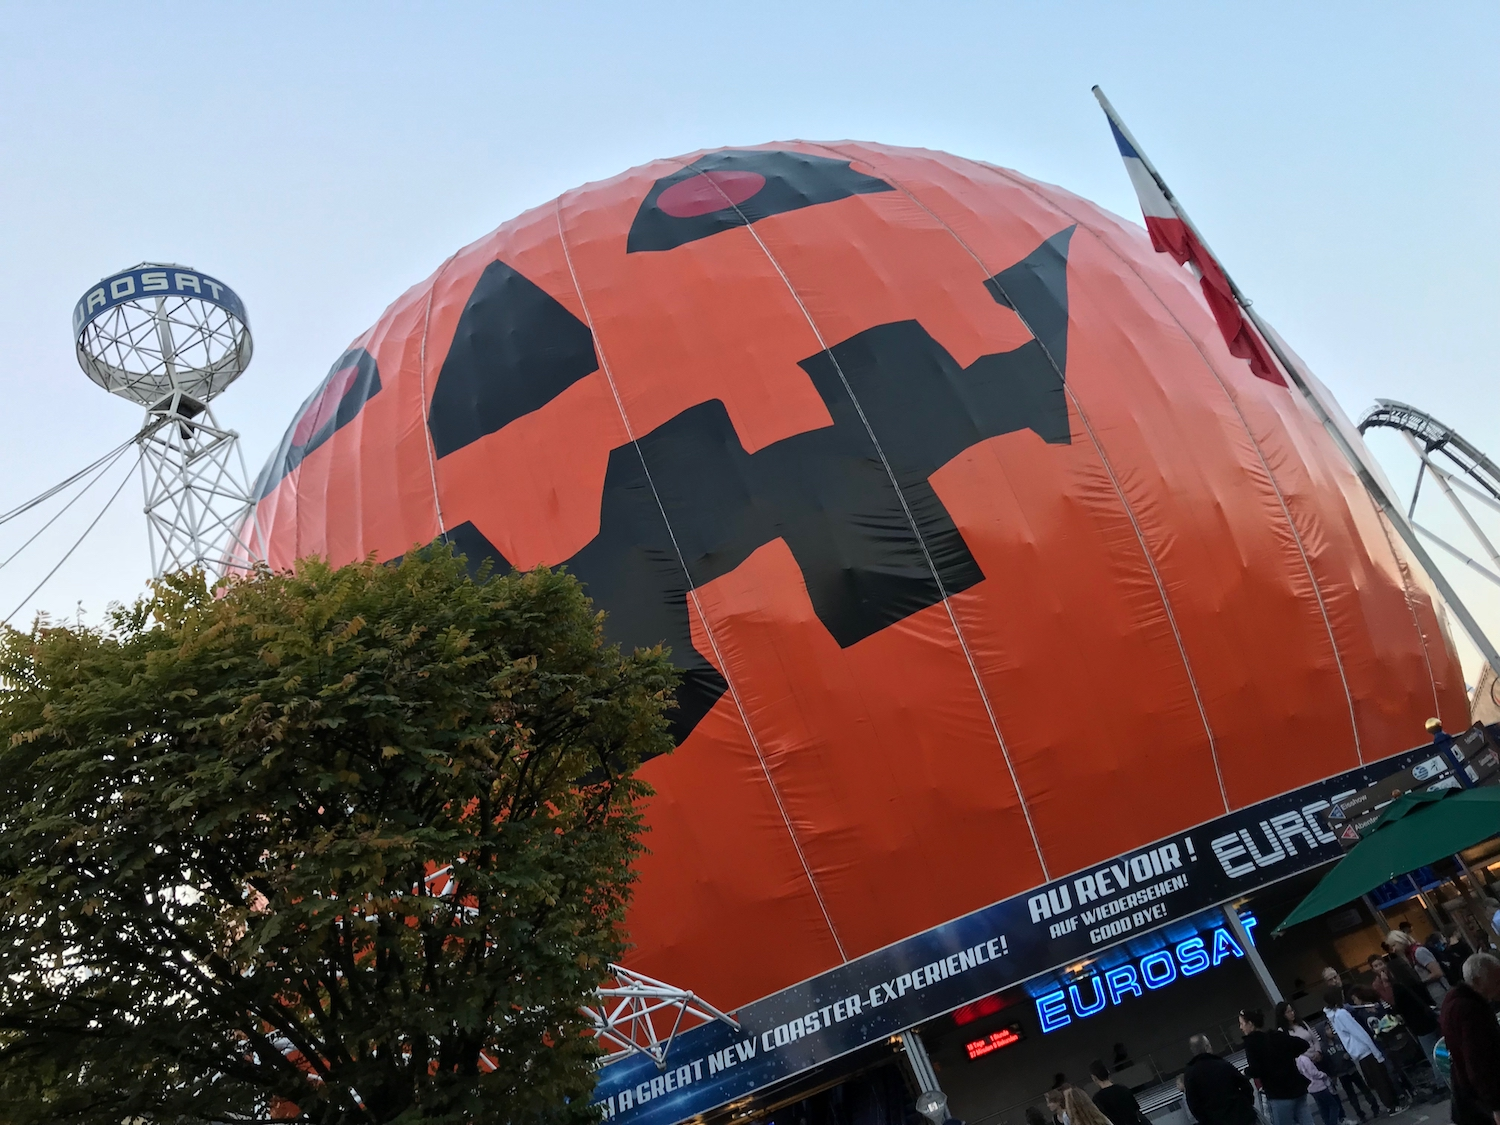 halloween_mark_benecke_wissenschafts_shows_science_days_europapark_kriminalbiologie_mumien - 7.jpg